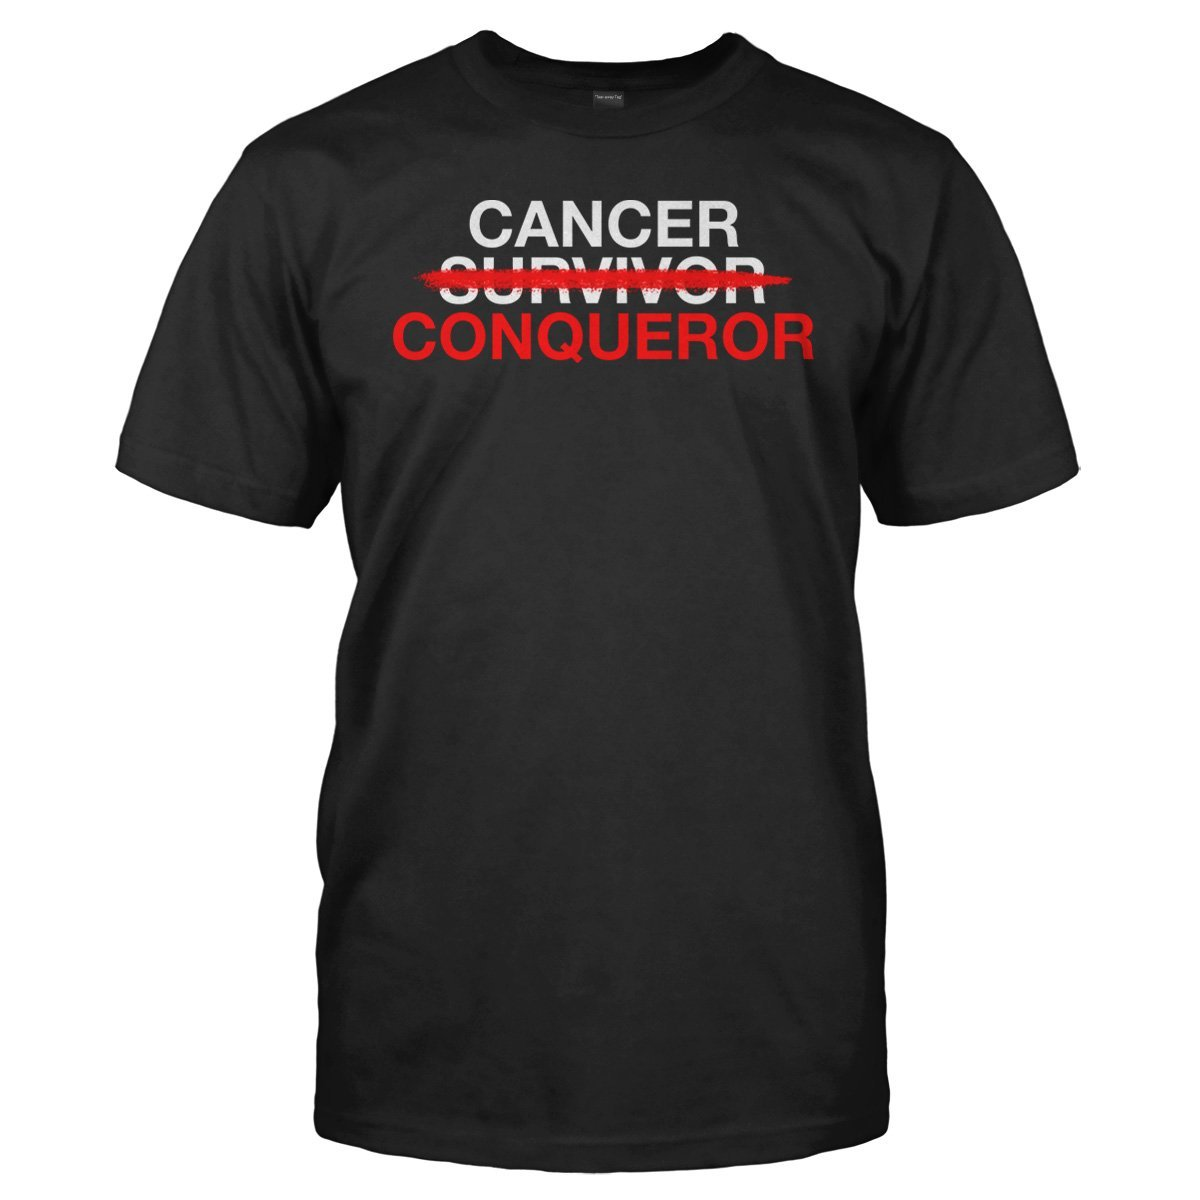 Cancer Conqueror - T Shirt